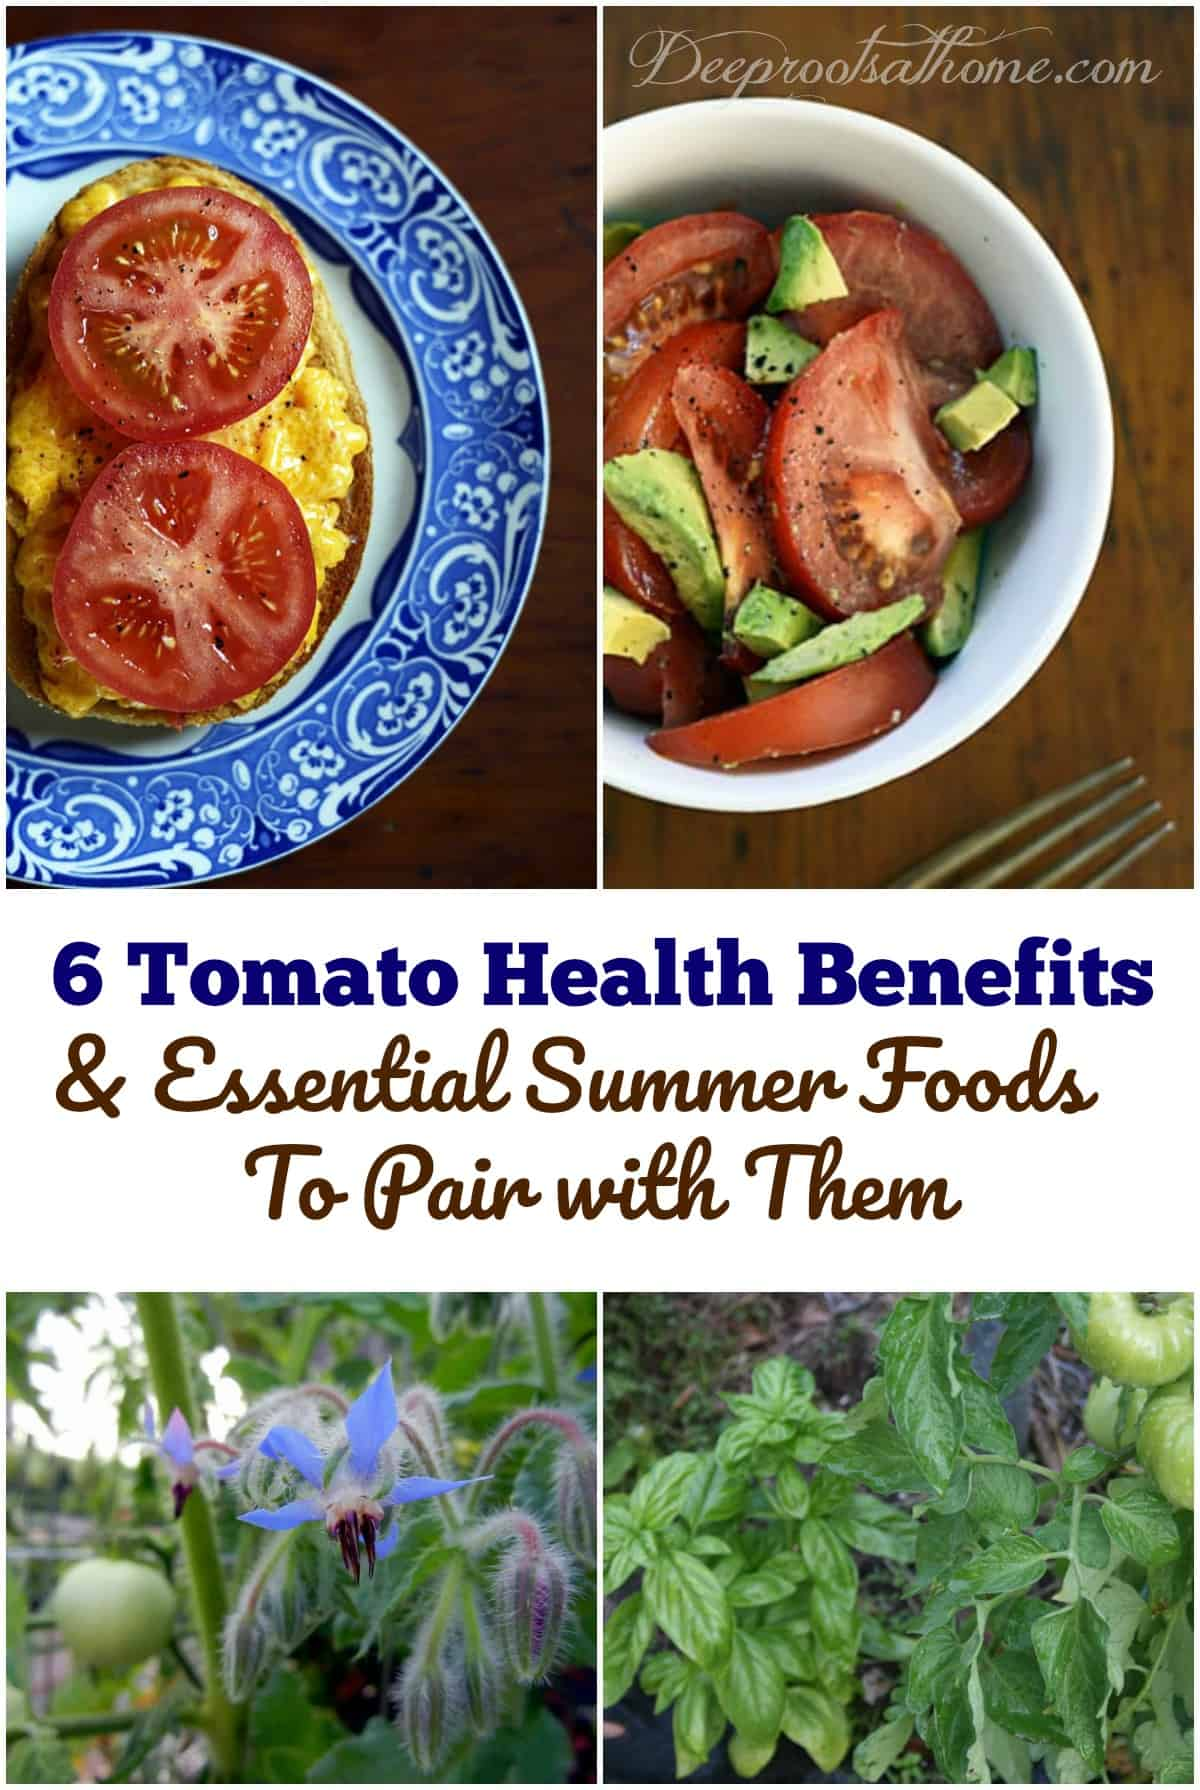 6 Tomato Health Benefits & Essential Summer Foods To Pair with Them. 2 recipes with tomatoes. Pinterest image.